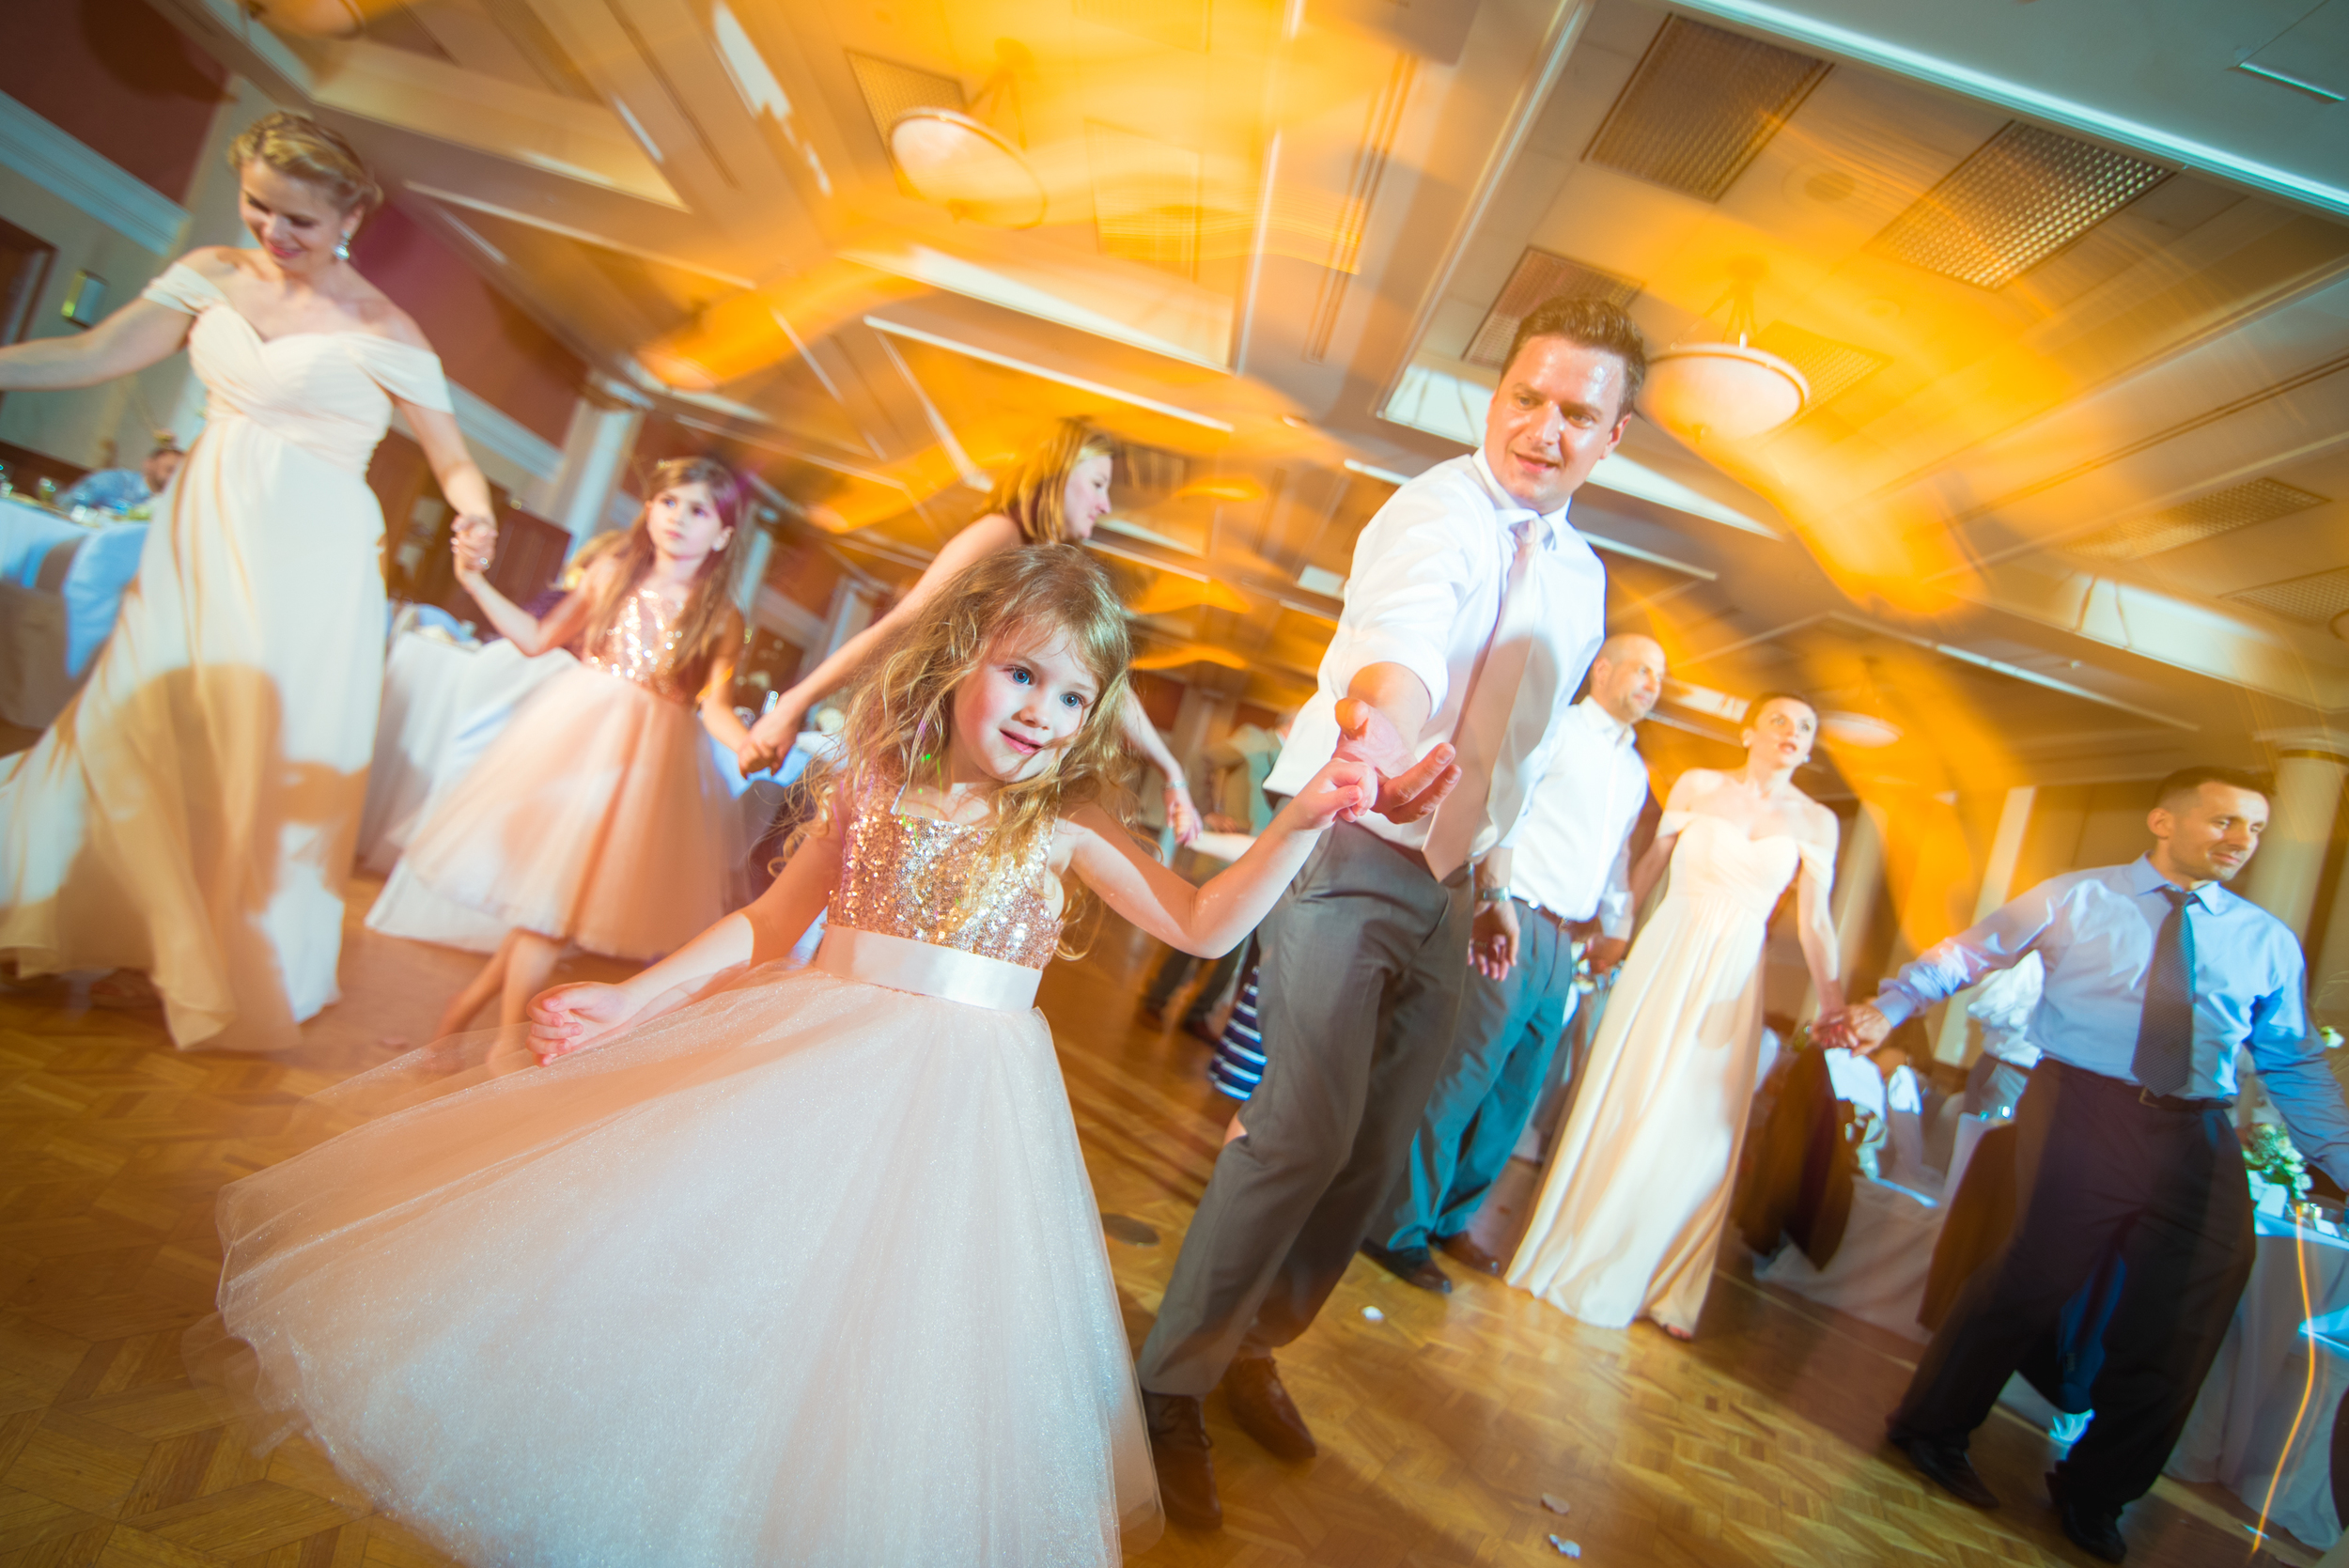 047Koper-Ekiert-Roanoke-Wedding-Virginia-Photographer-mattrossphotography.com.jpg